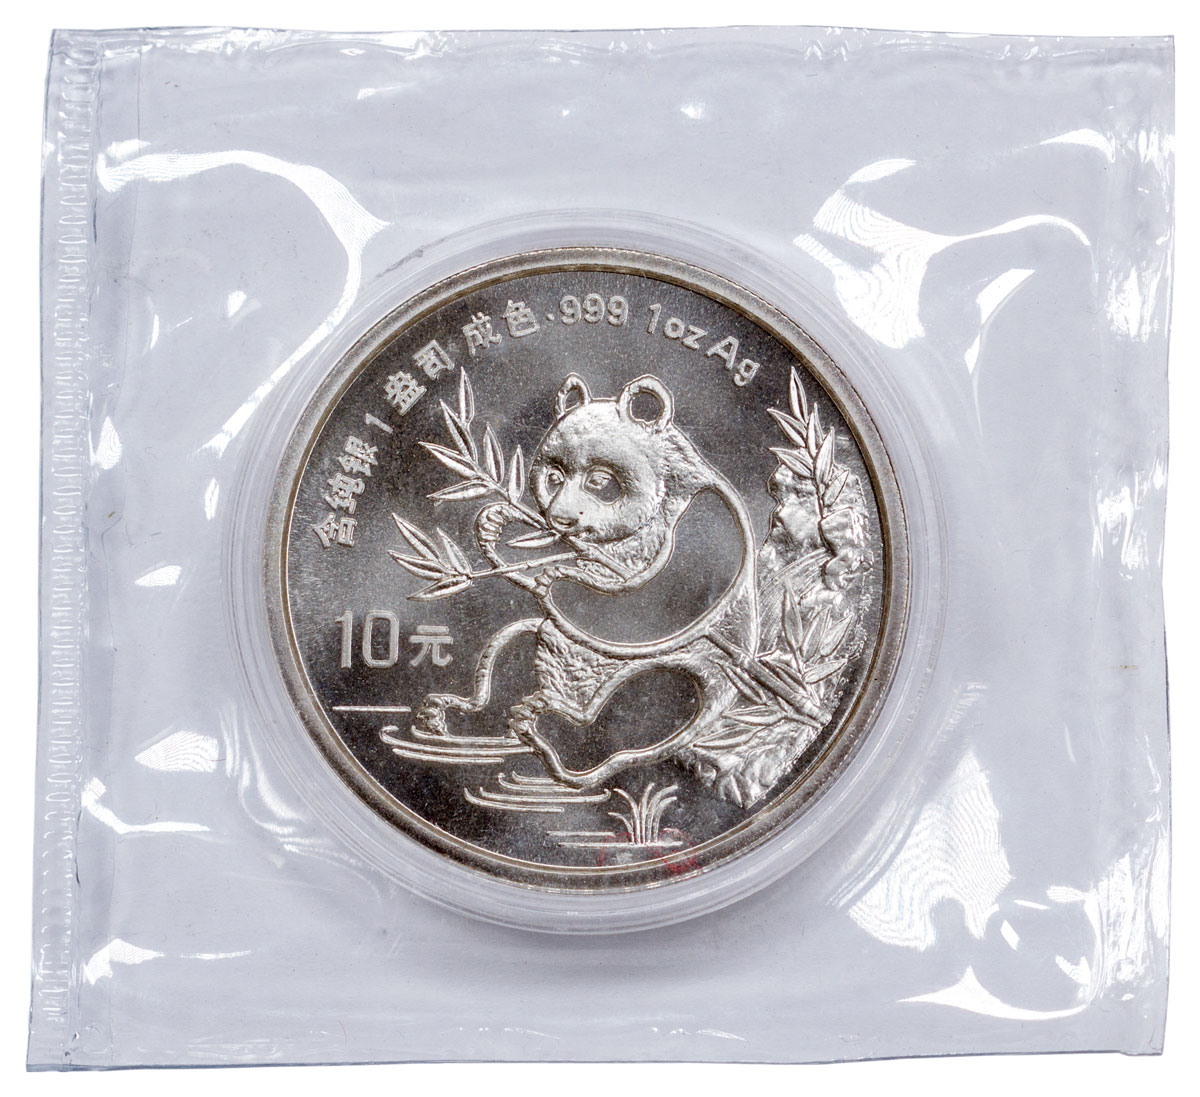 1991 China 1 oz Silver Panda ¥10 Coin GEM BU